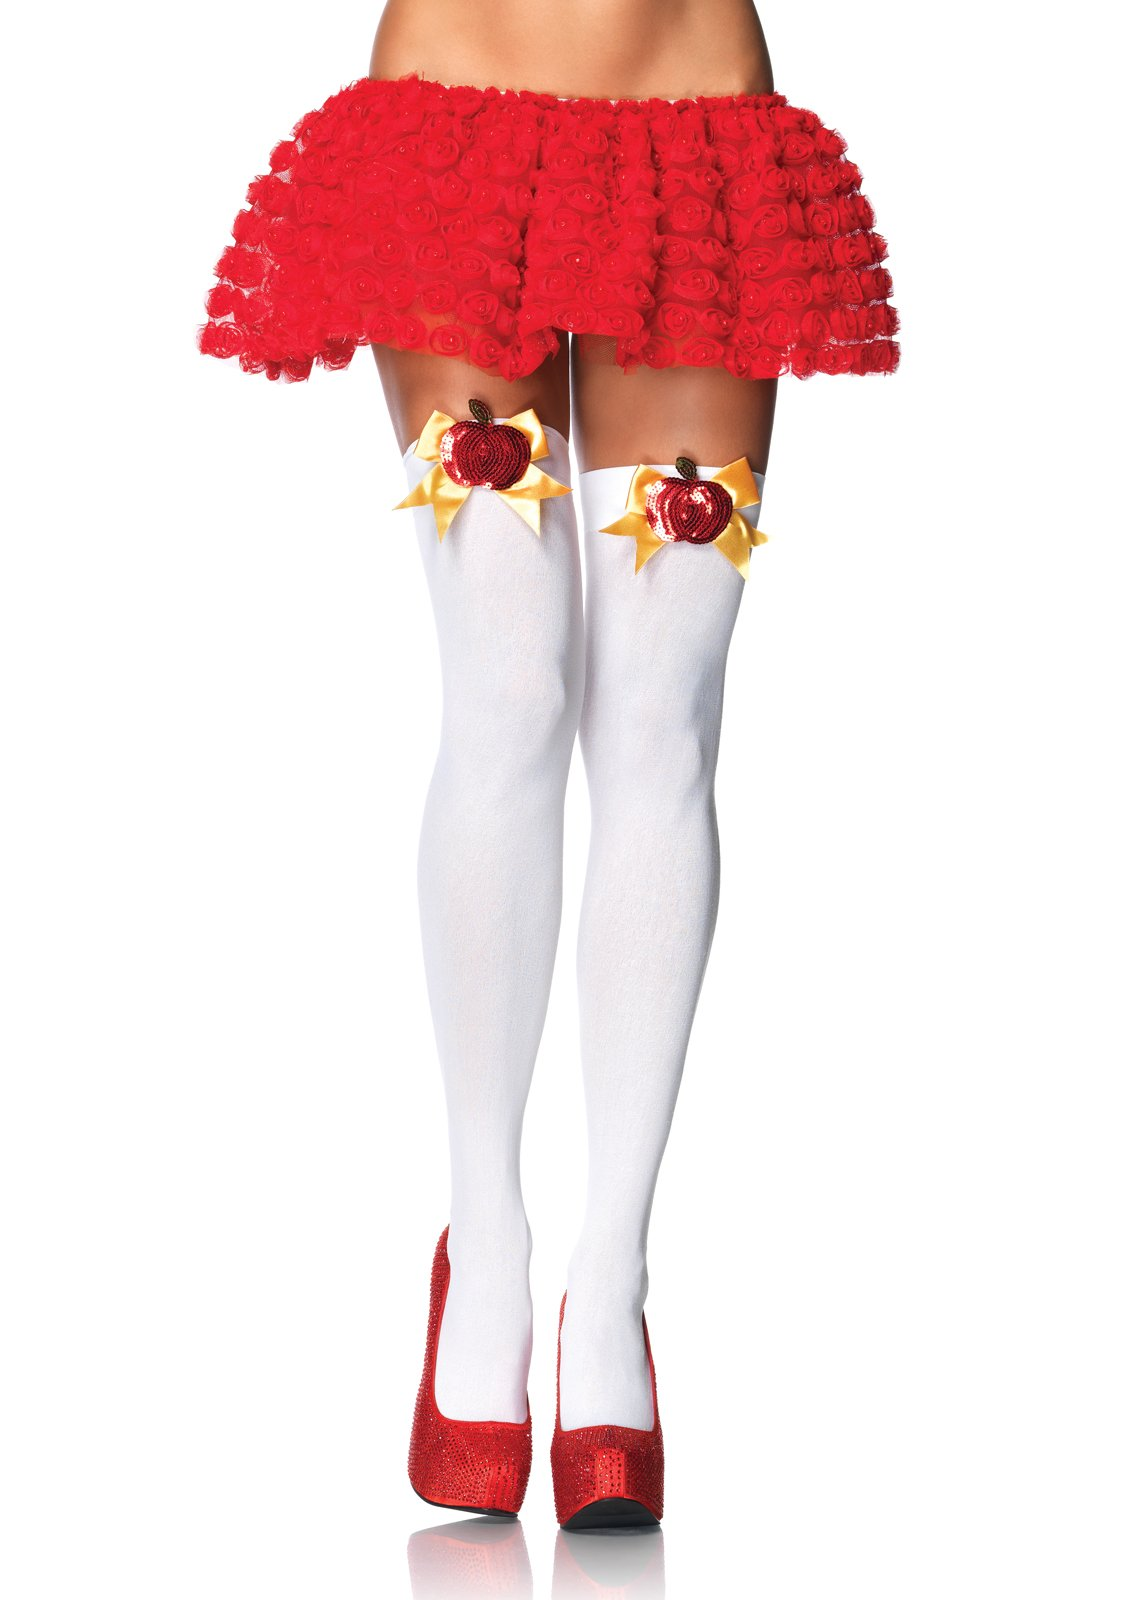 Poison Apple Adult Thigh Highs (Adult)